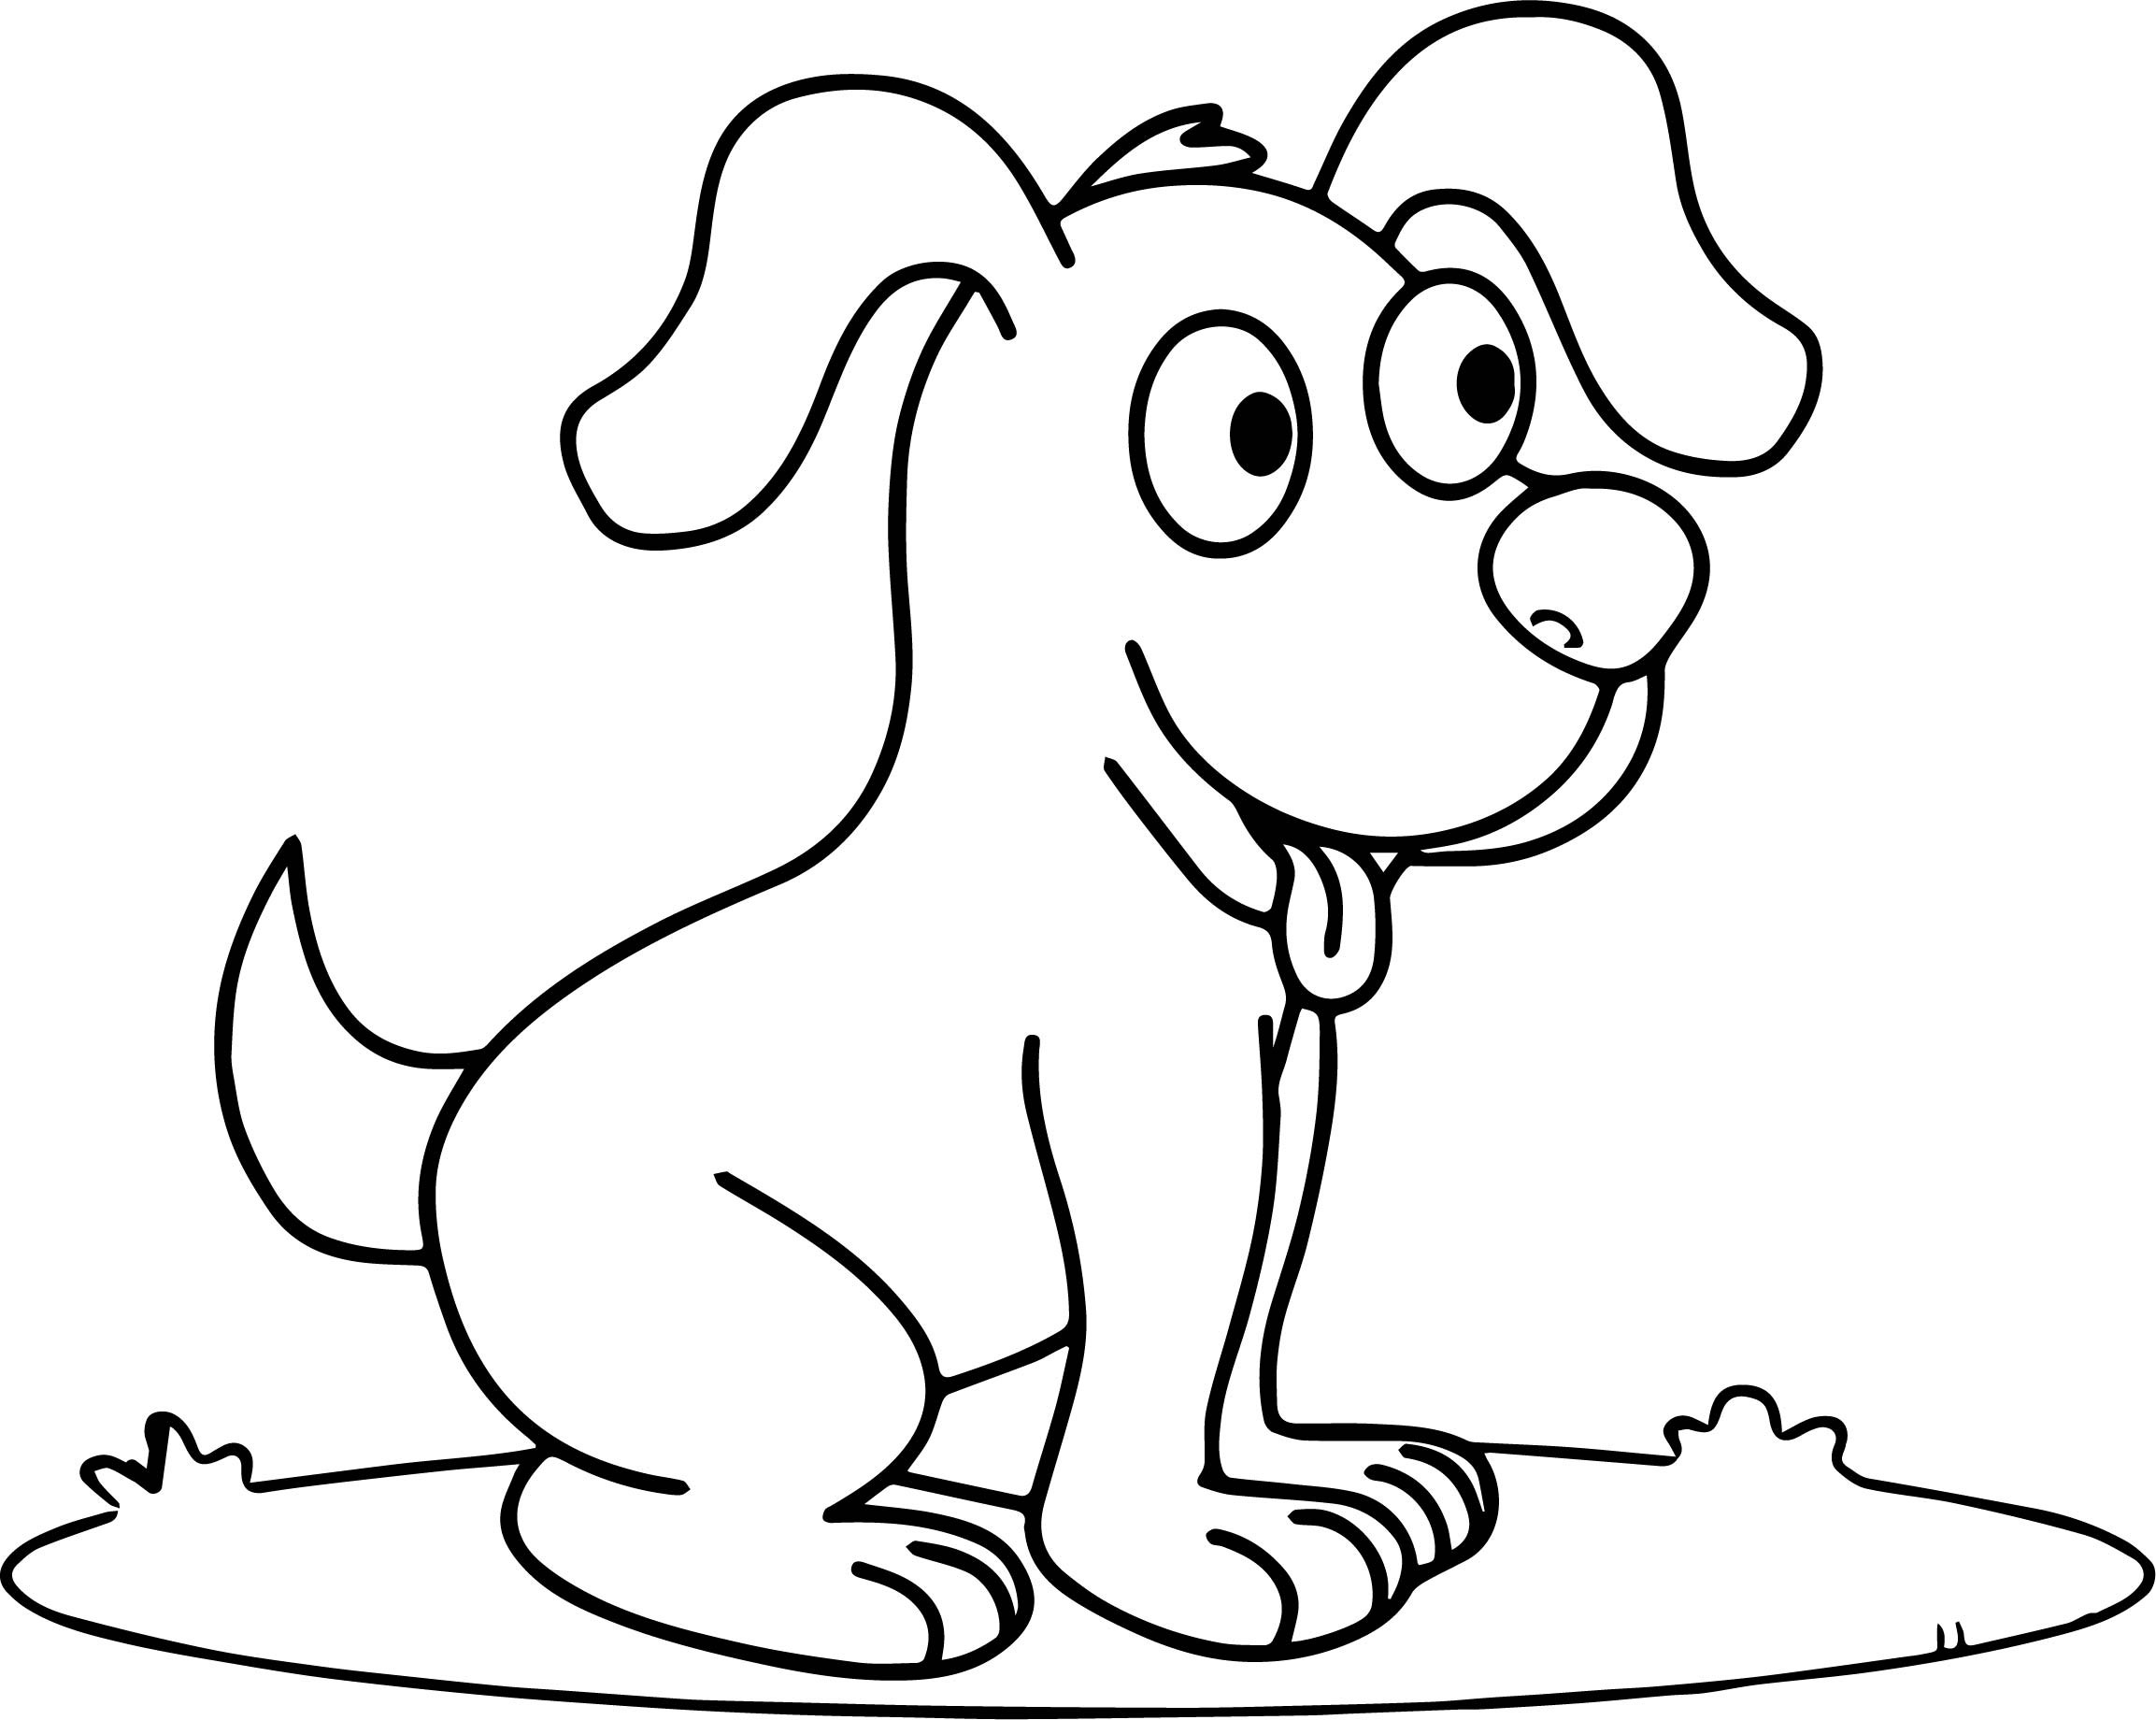 dog coloring free printable dog coloring pages for kids coloring dog